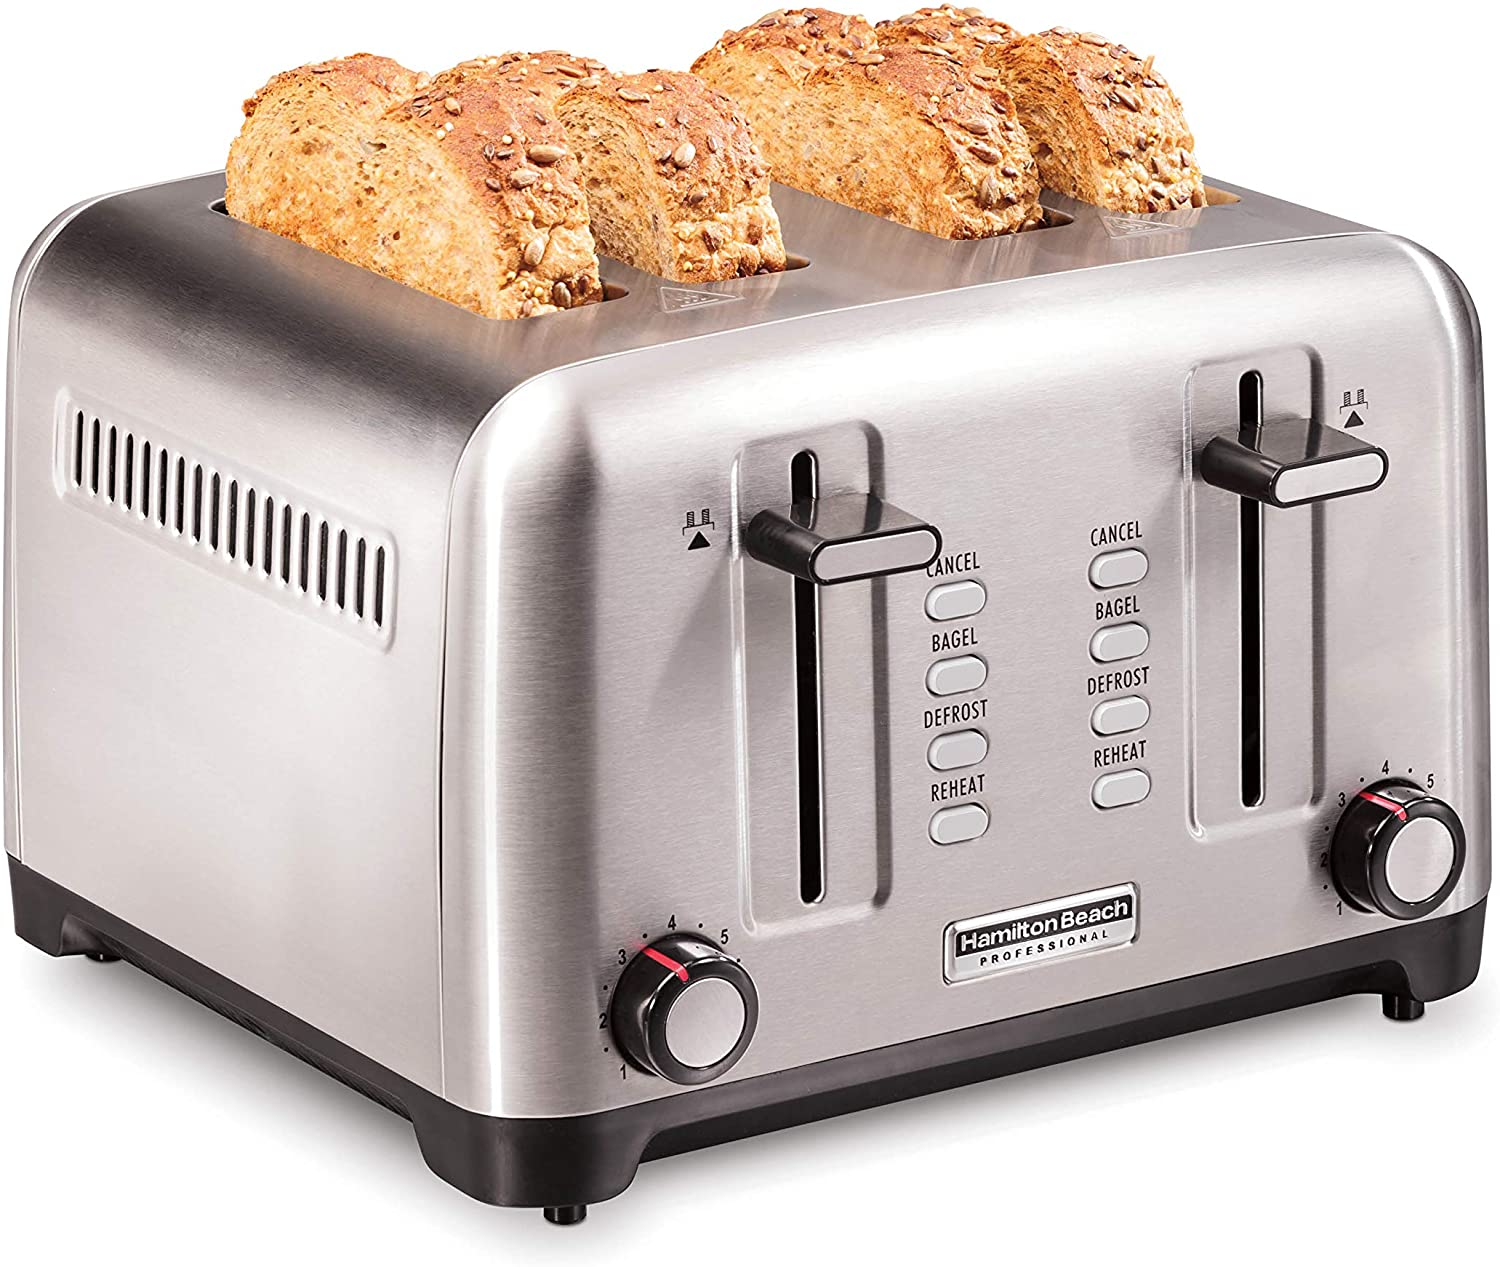 Hamilton Beach 24990 Professional 4 Slice Toaster, with with Bagel, Defrost & Reheat Settings, Stainless Steel